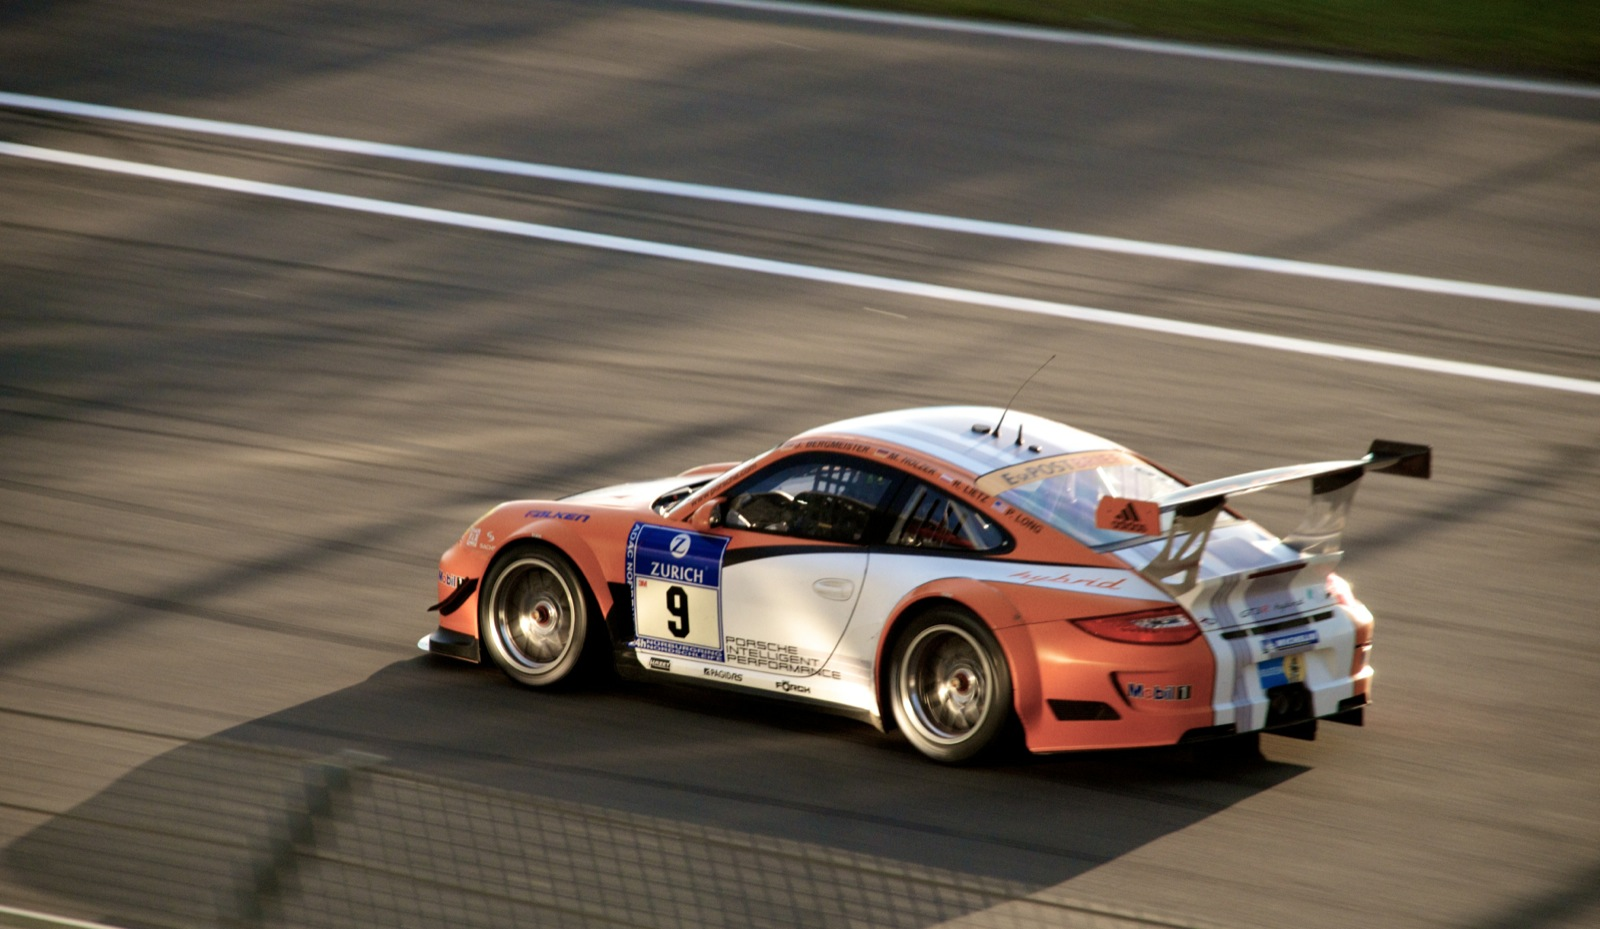 24h Nürburgring 2011 – Qualifying VI